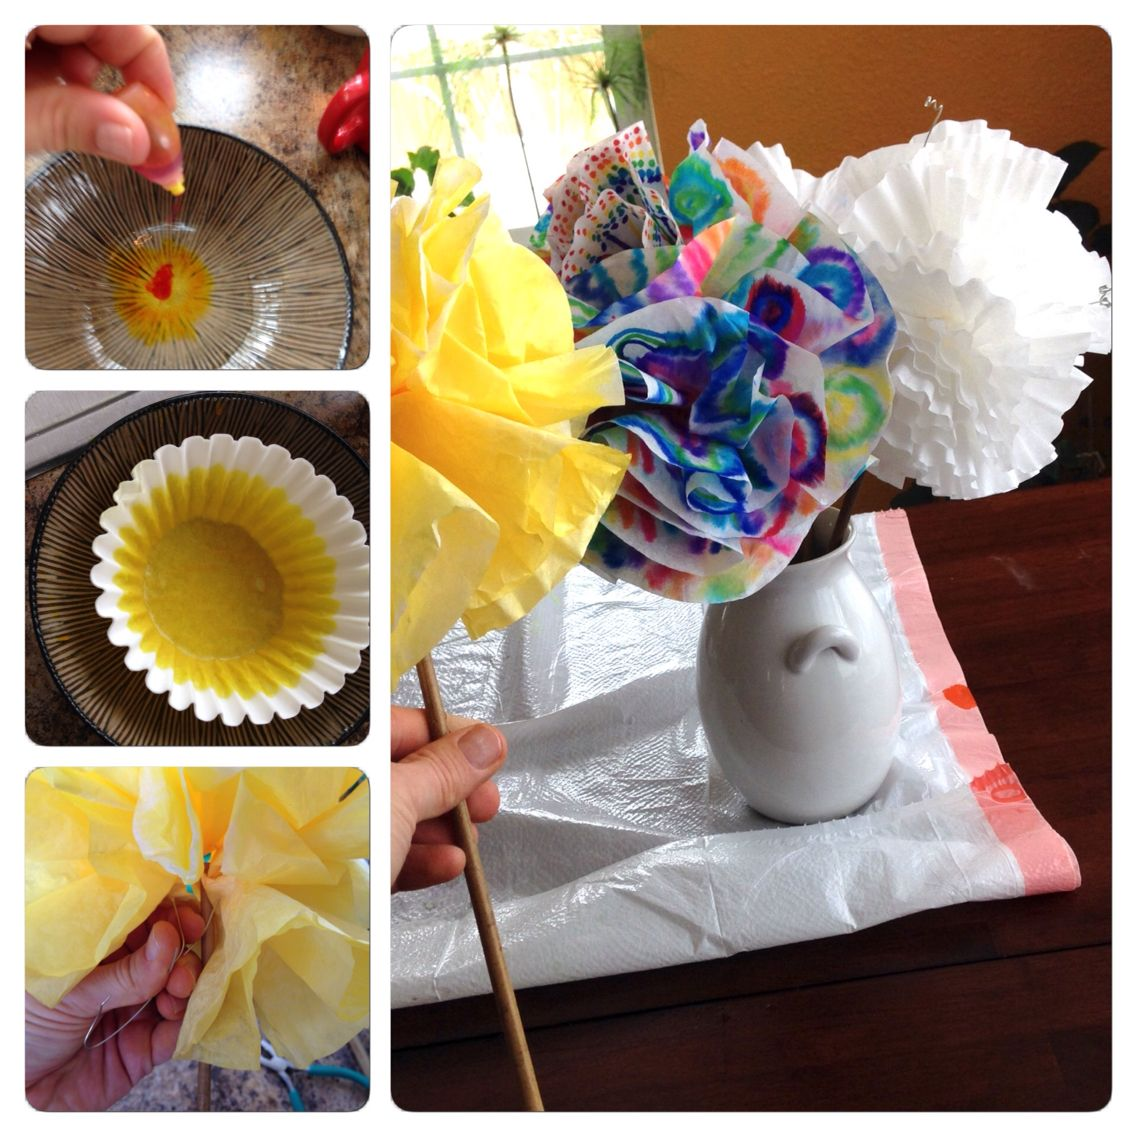 Coffee filter flowers table decor: take coffee filters and soak them in food dye or use markers and a spray bottle of water. Let them dry. Use wire and a stick to scrunch the filters to form a puffy flower. Fun to do with your kids!